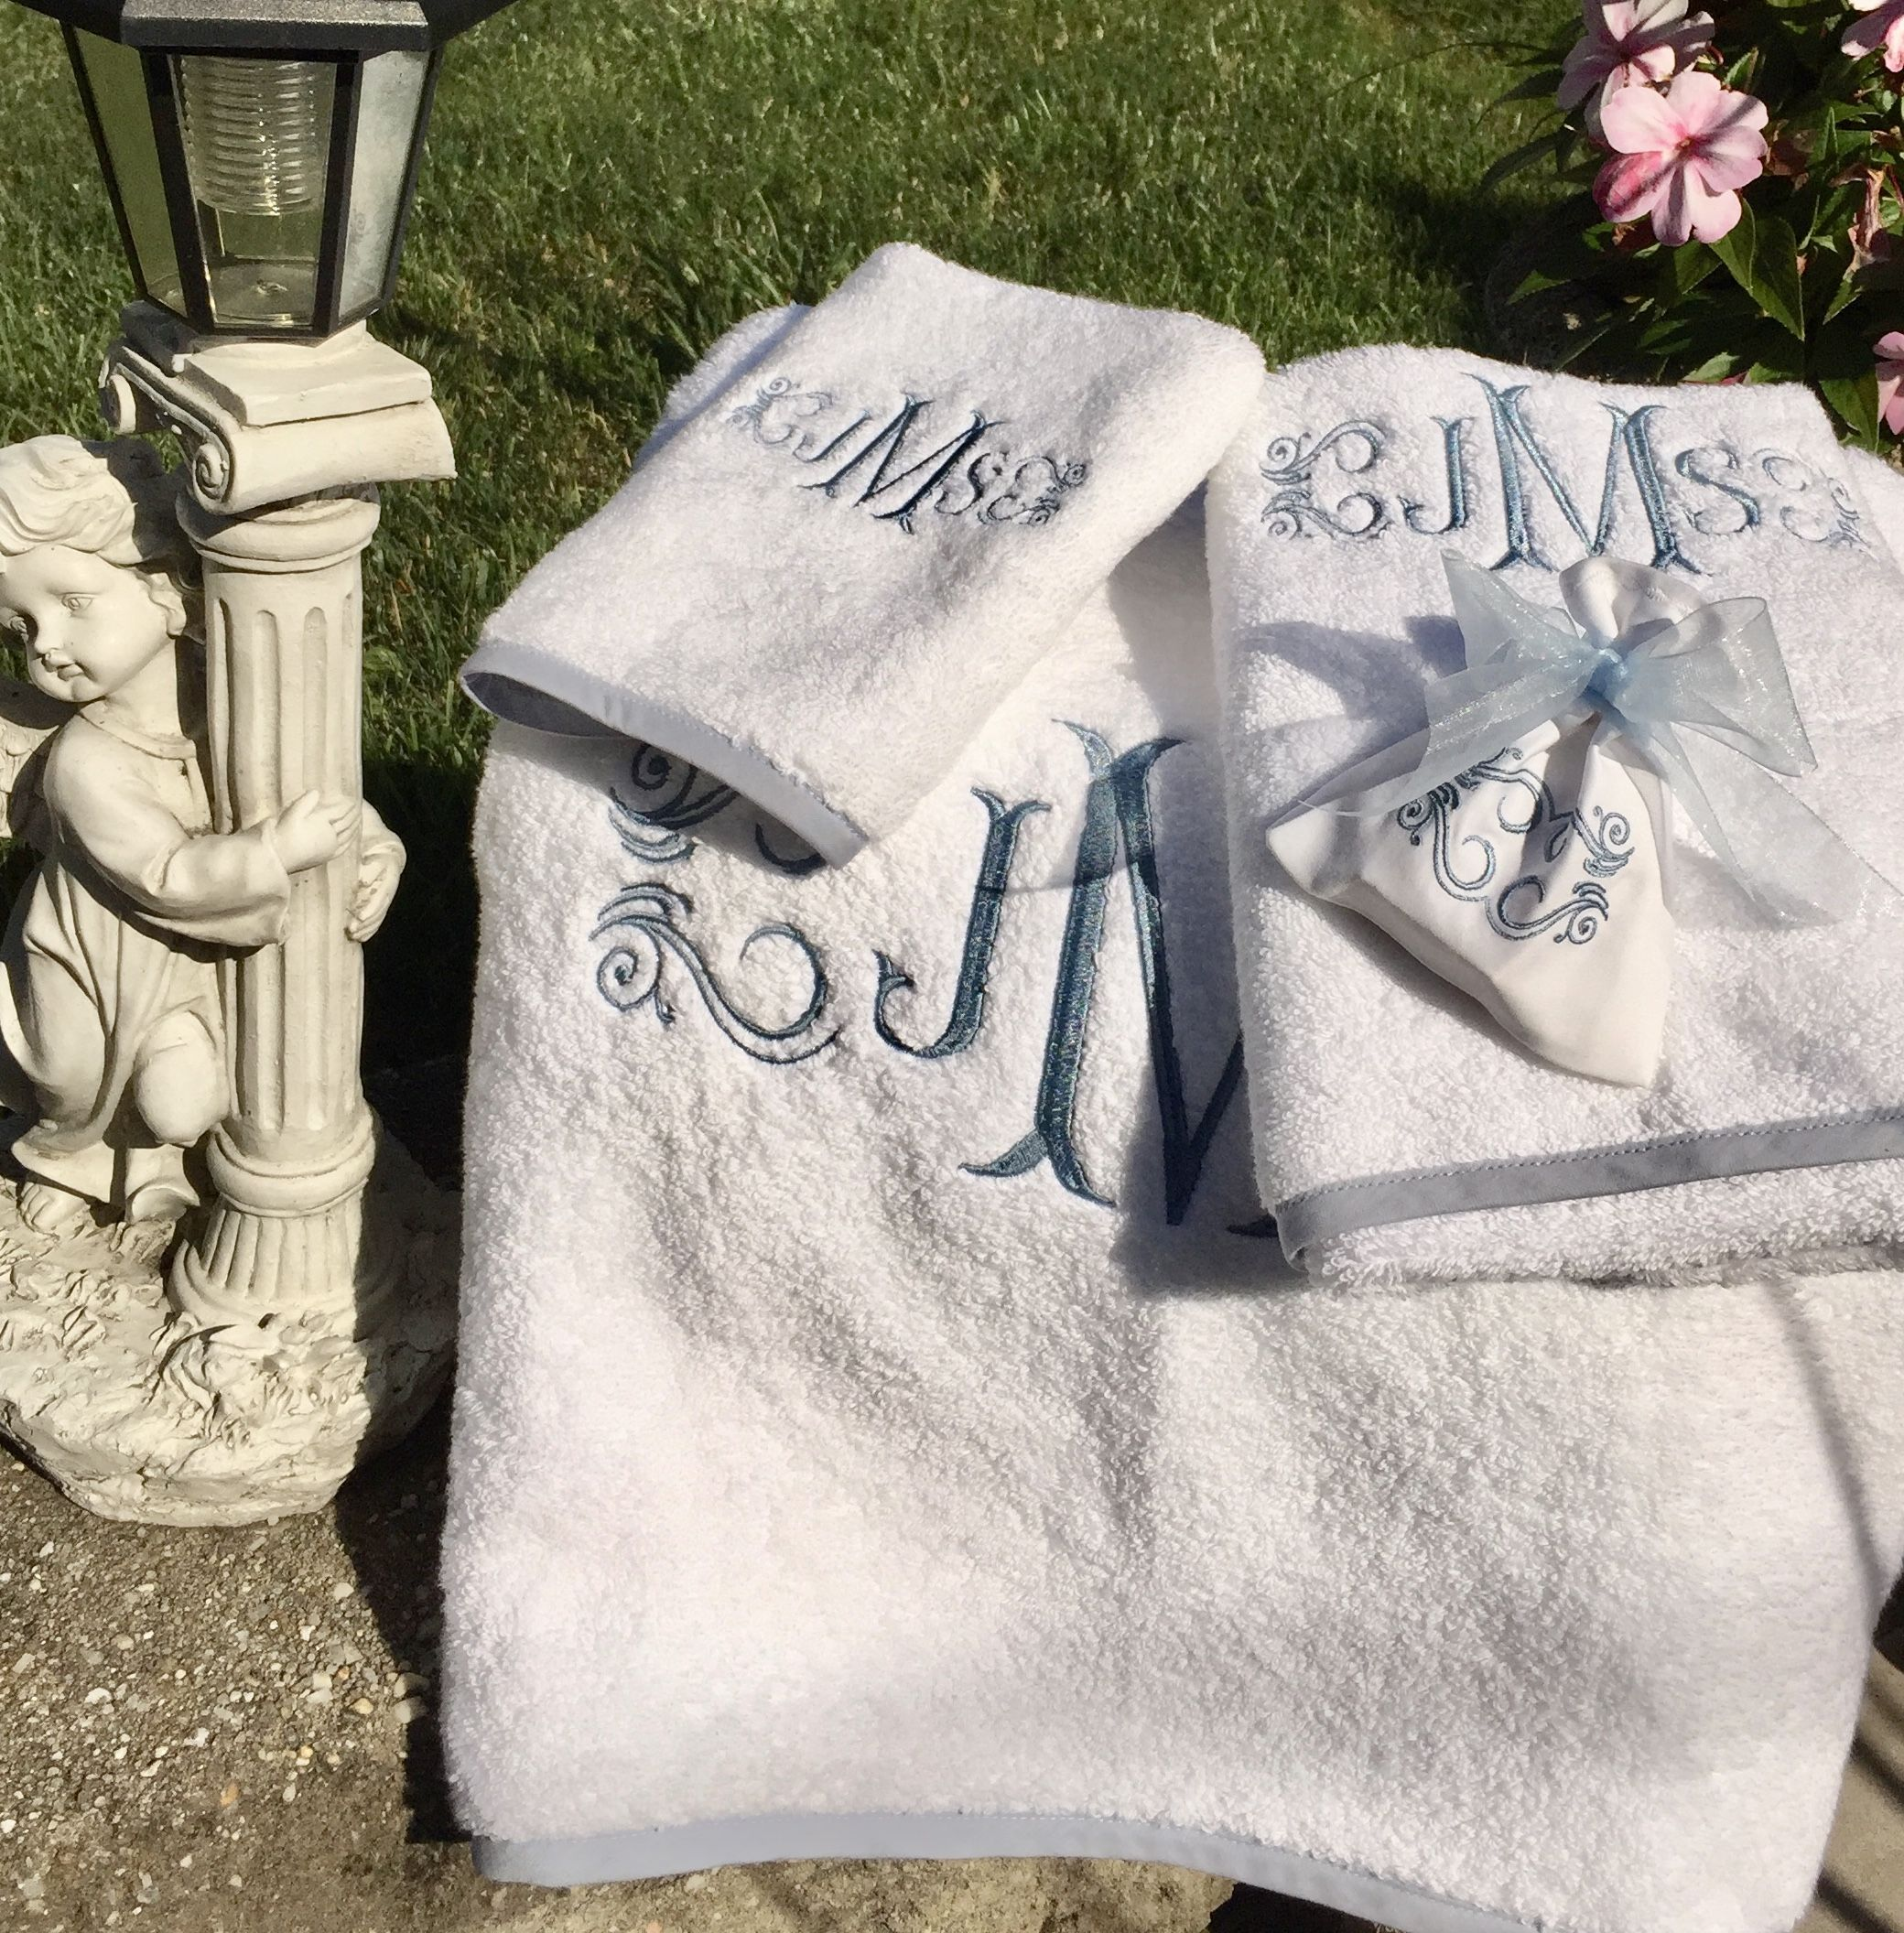 Fishtail Monogram Towel Set Luxurious, soft and absorbent white towel set. monogrammed  towels, monogrammed bath towels, personalized bath towels, ...